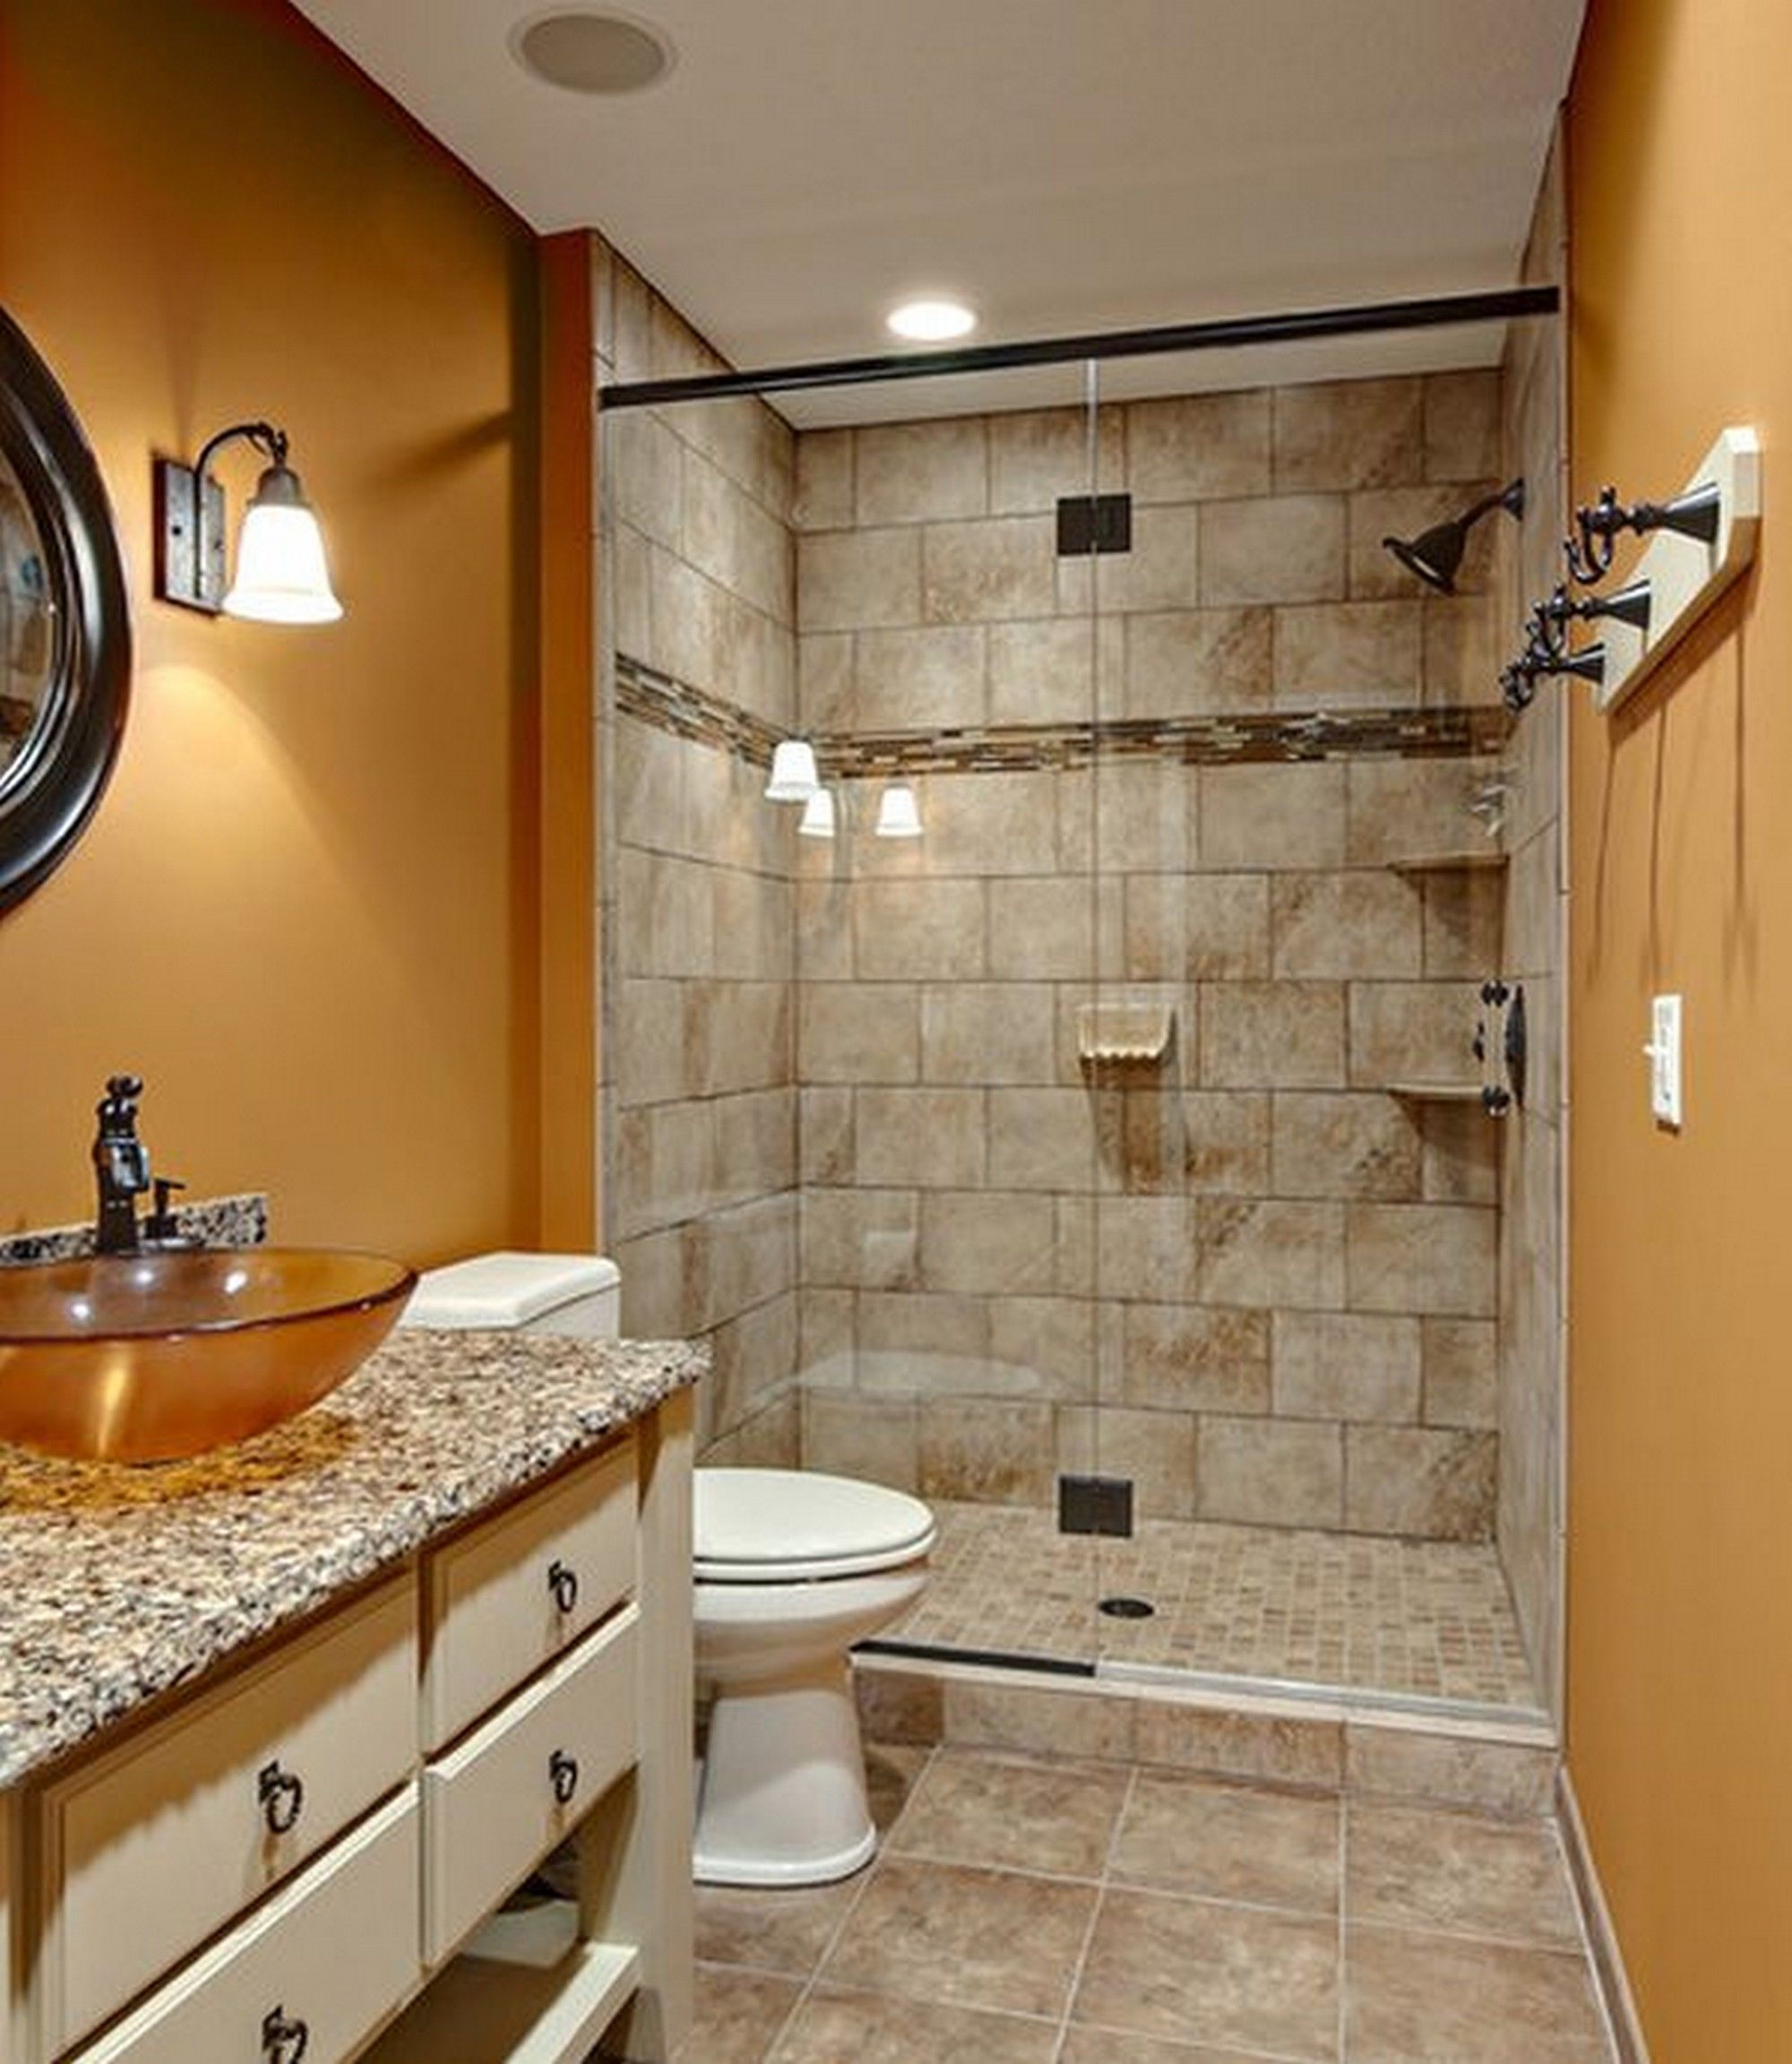 Small Bathroom Remodel Ideas top small bathroom remodel ideas bathroom renovations average about a roi plus all Beautiful Bathroom Design With Walk In Shower